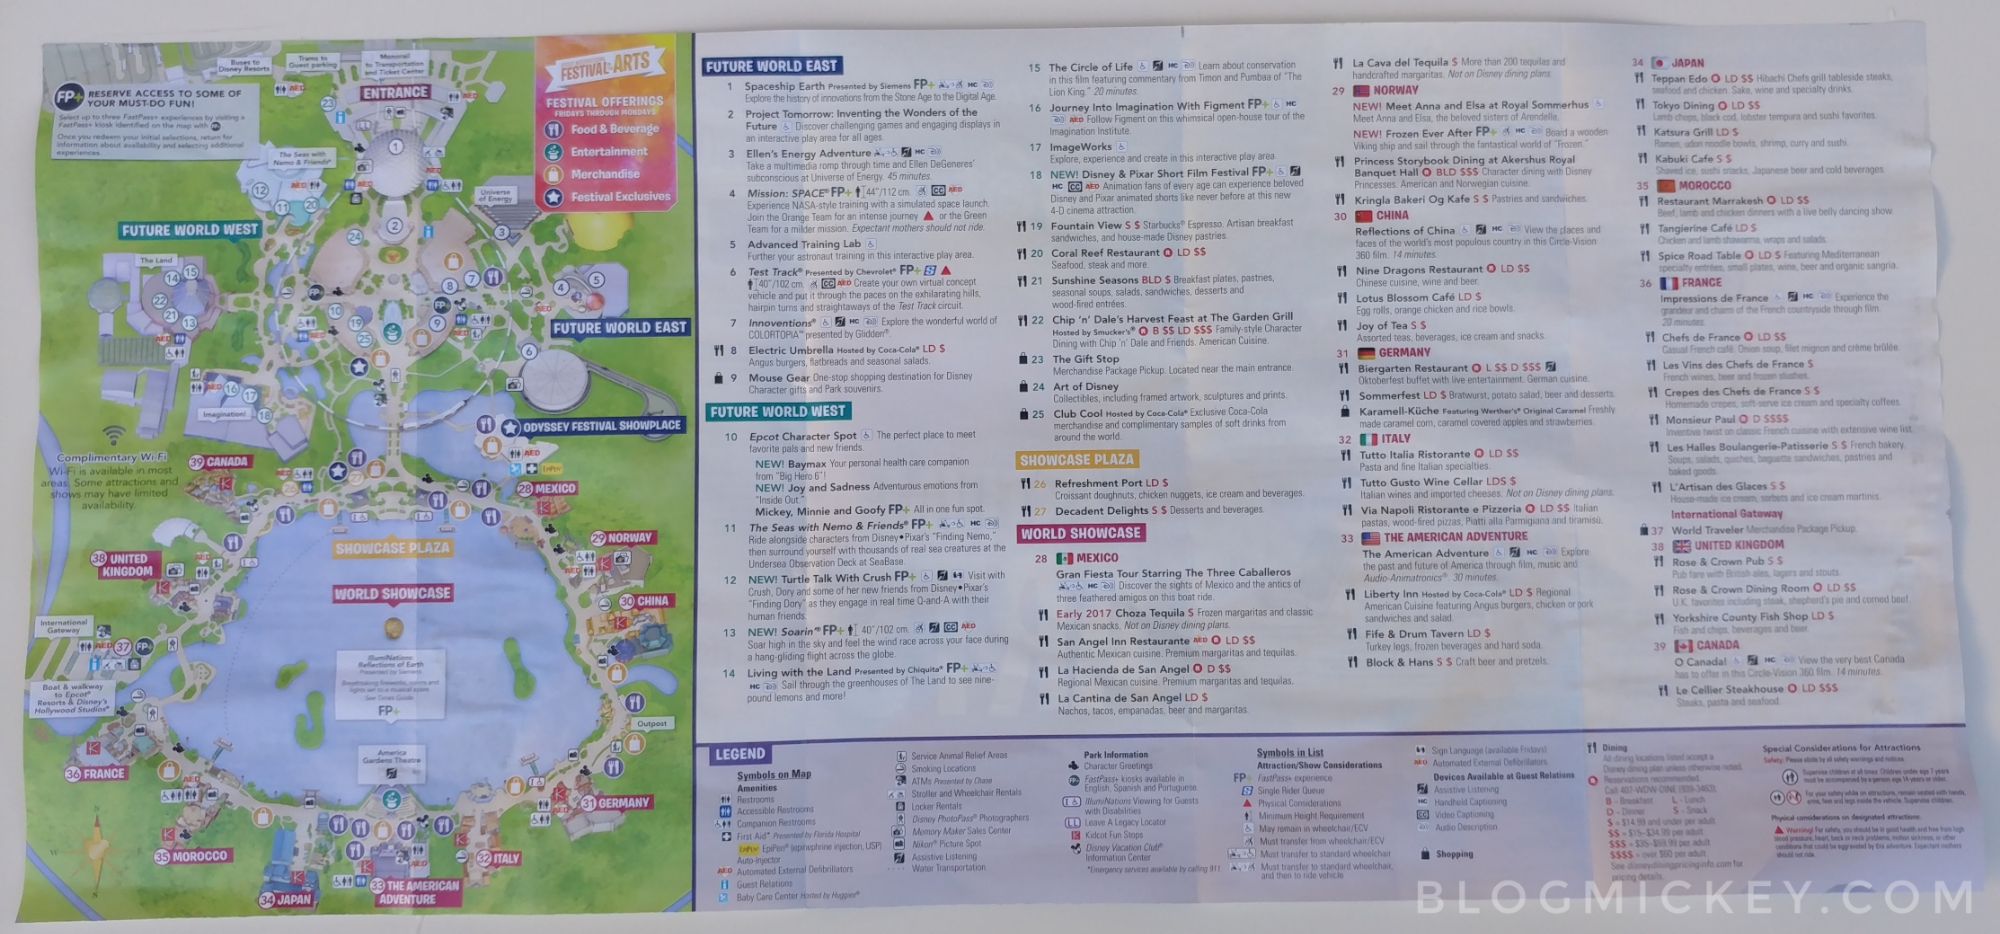 PHOTOS Epcot Festival of the Arts guide map Blog Mickey